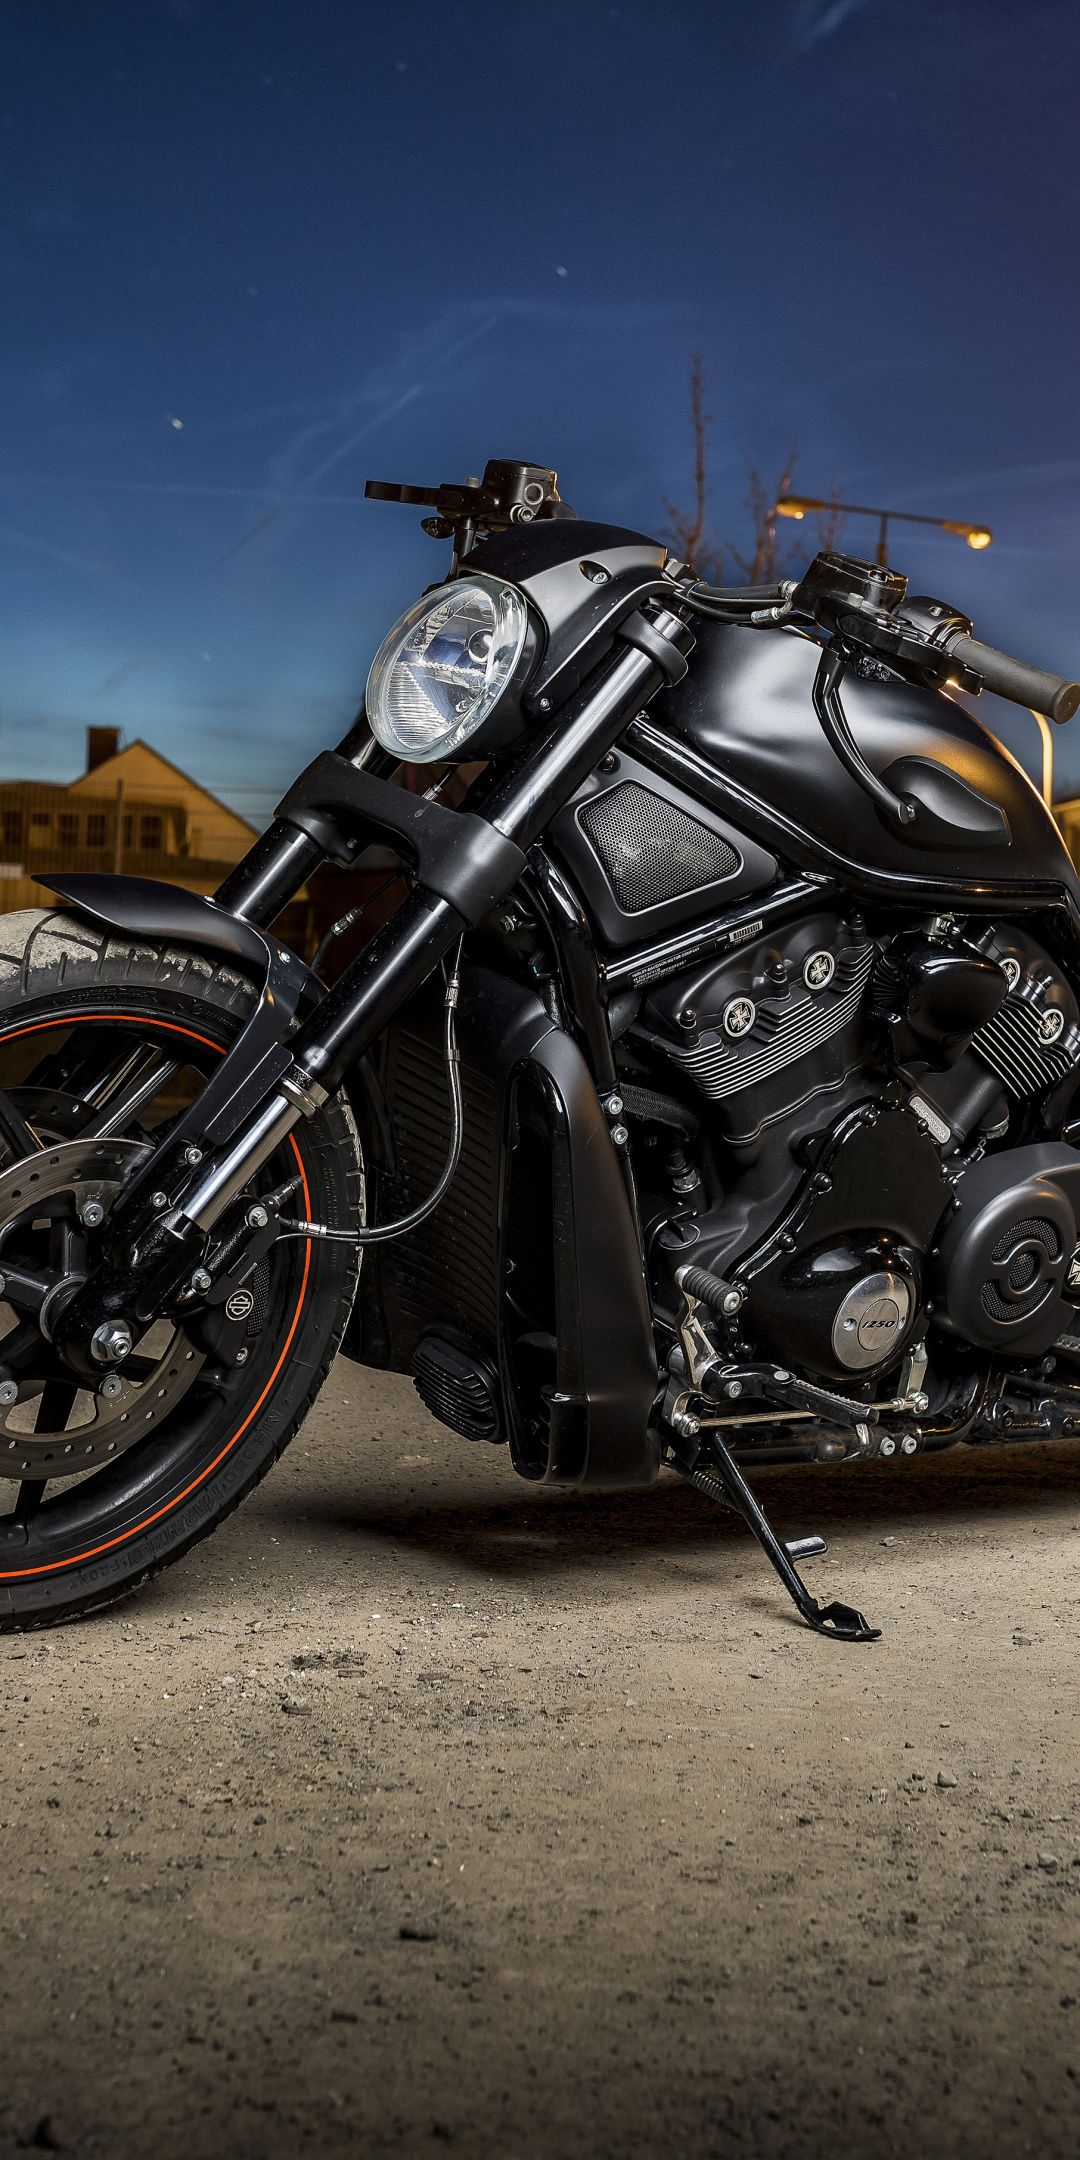 Harley Davidson Muscle Bike Night Out 1080x2160 Wallpaper